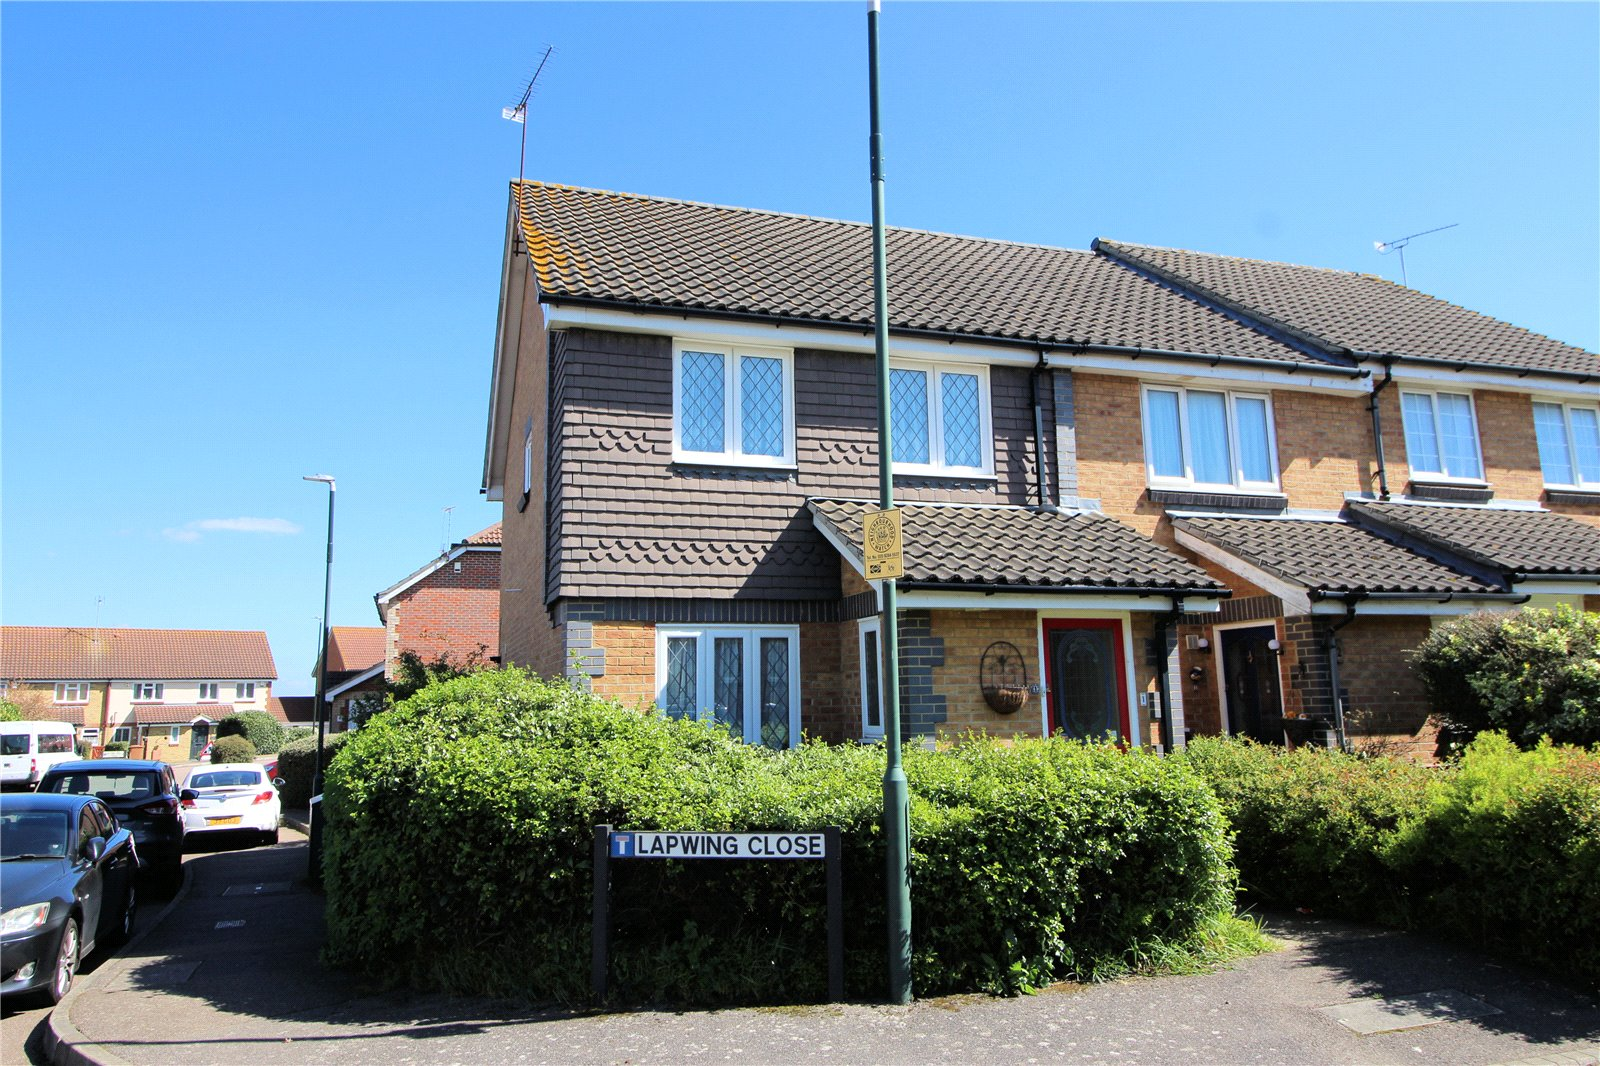 Lapwing Close, Howbury Park, Slade Green, Kent, DA8